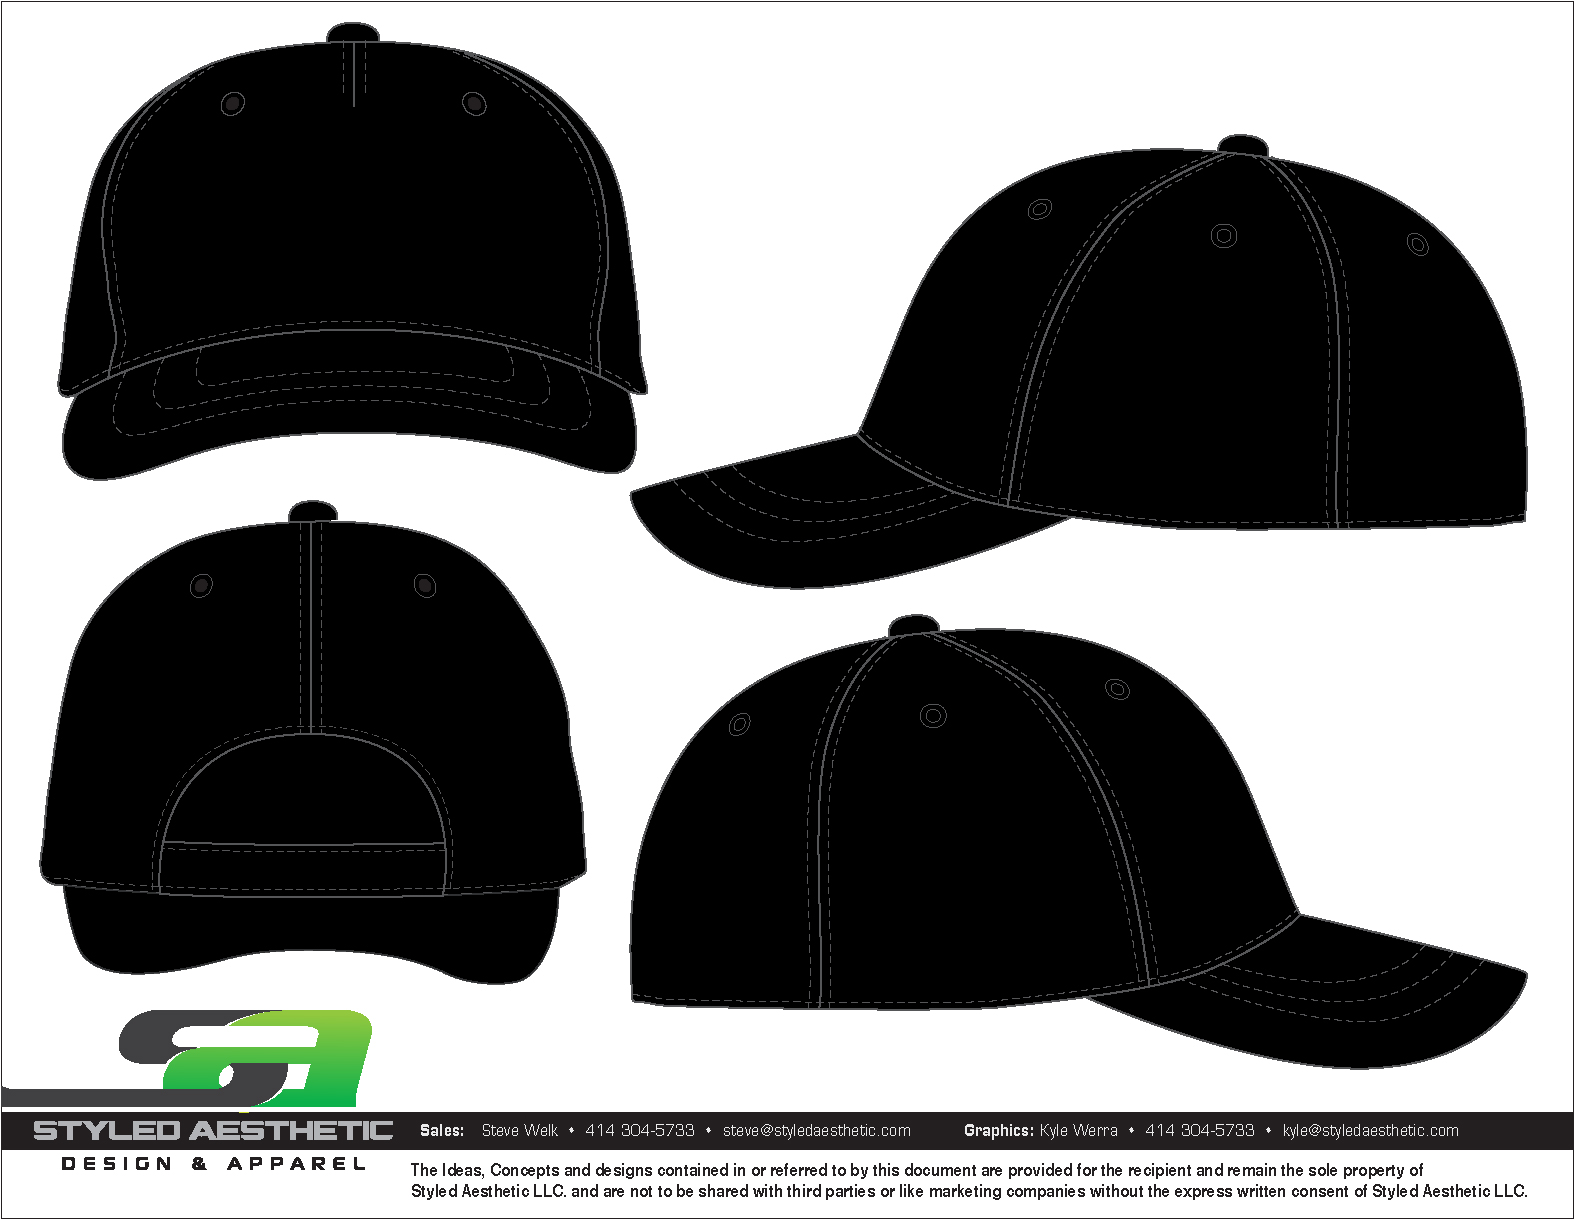 26 Images of Hat Ball Cap Template | leseriail.com